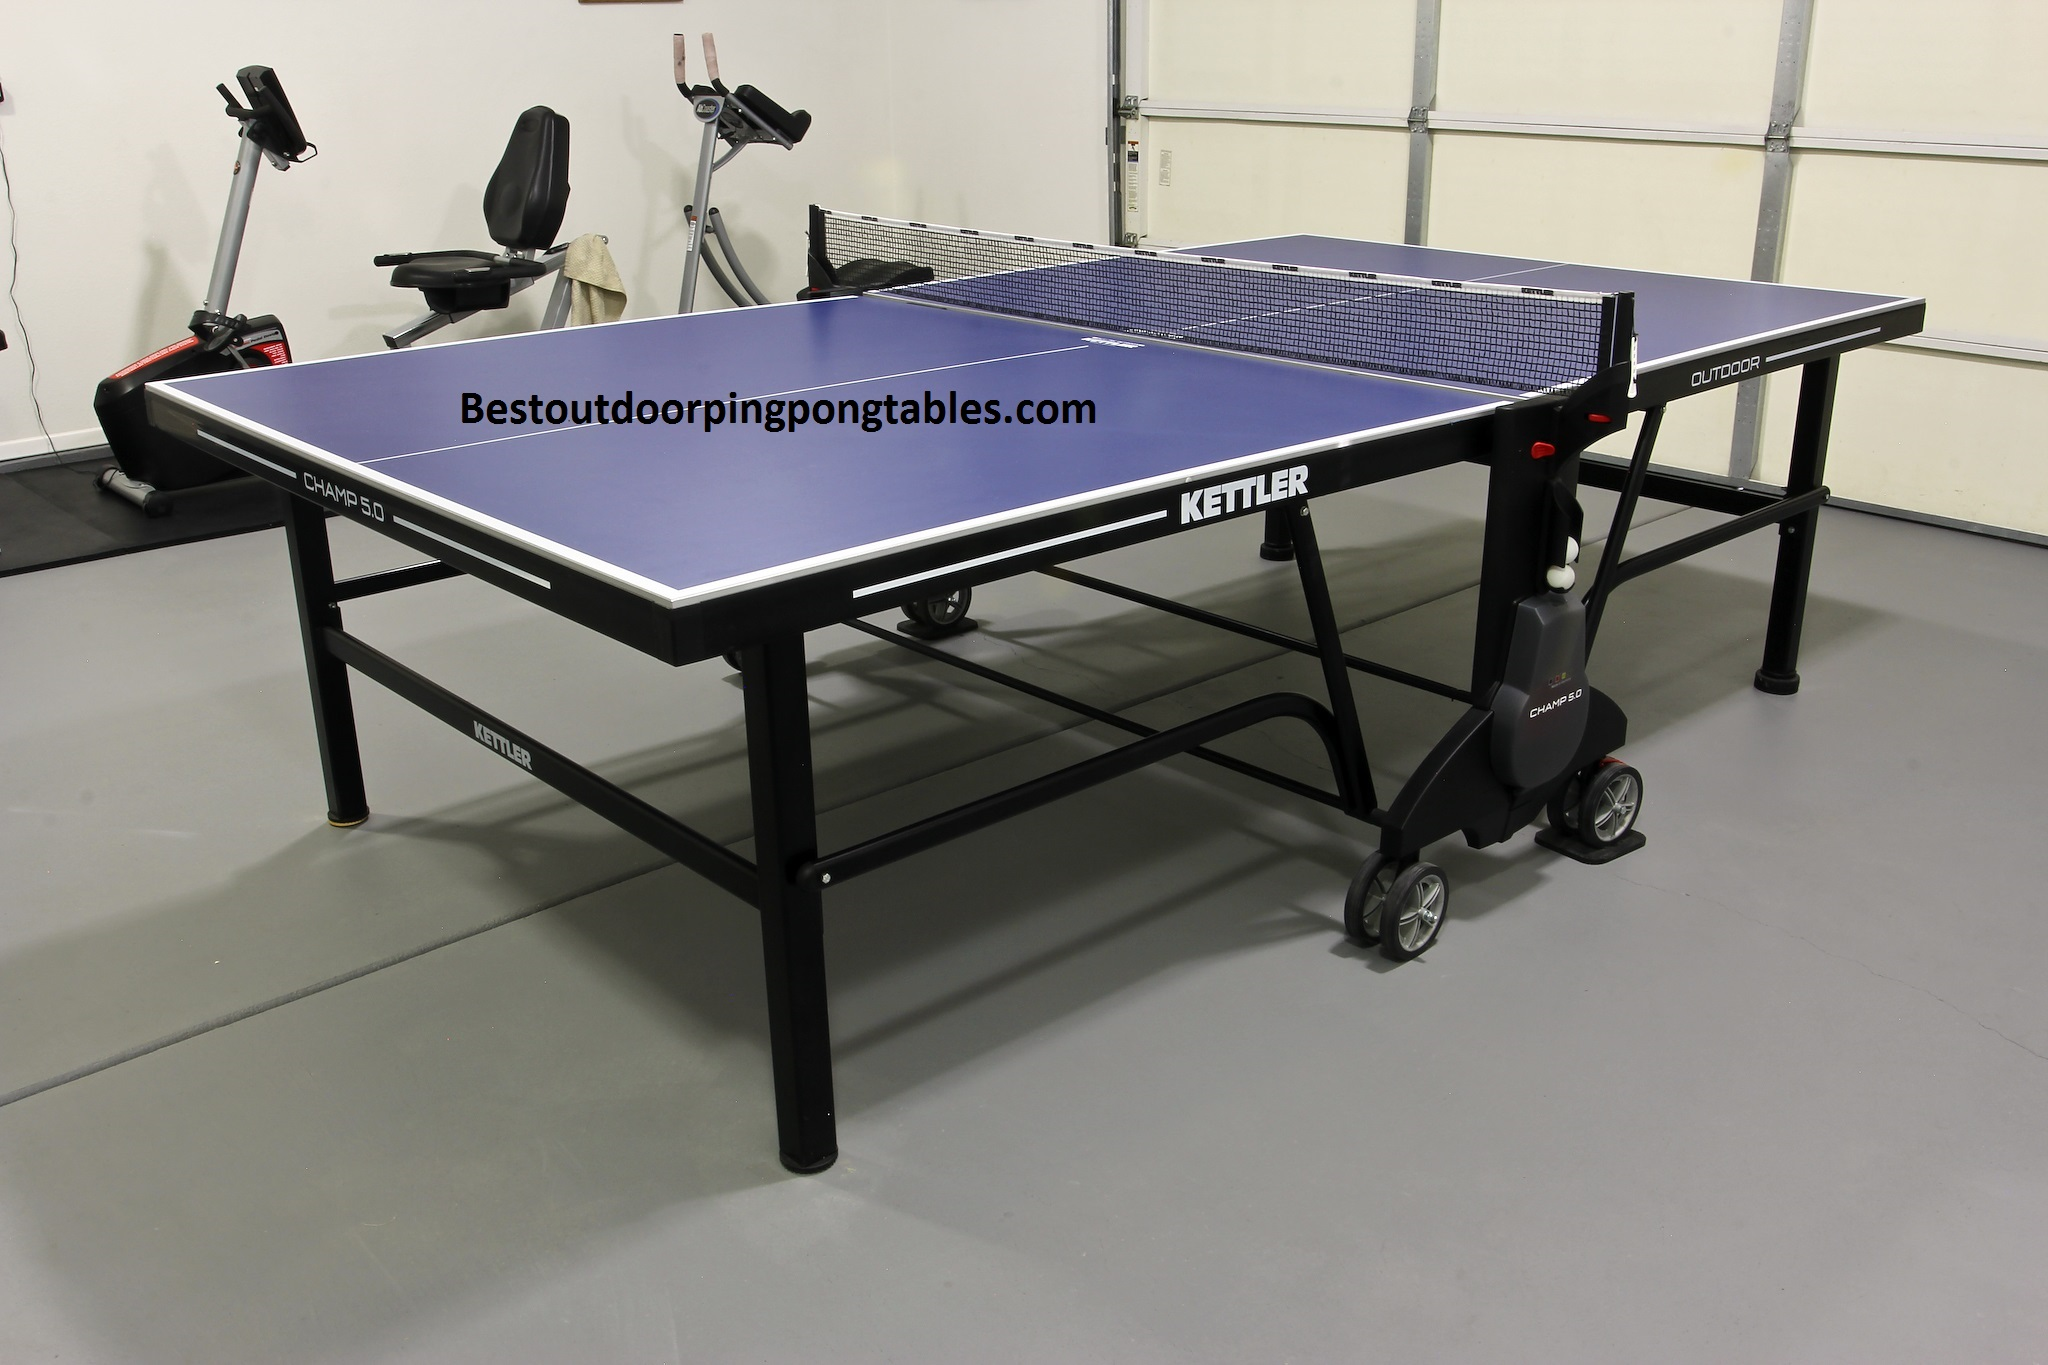 Kettler champ 5 0 outdoor ping pong table for Table kettler